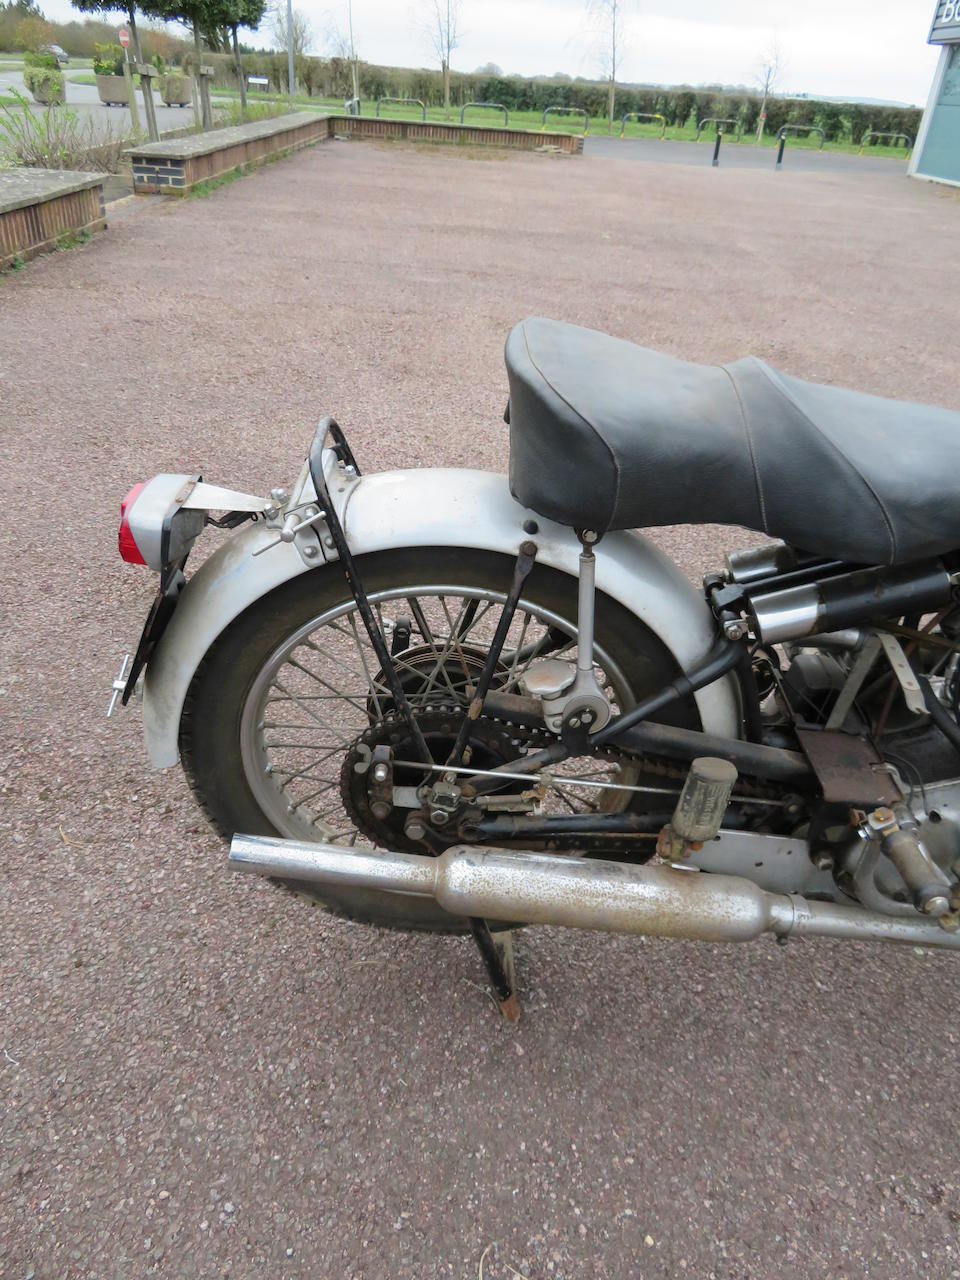 Property of a deceased's estate,1951 Vincent 998cc Series-C Black Shadow Frame no. RC9661B Engine no. F10AB/1B/7761  Crankcase mating no. VV17 / VV17